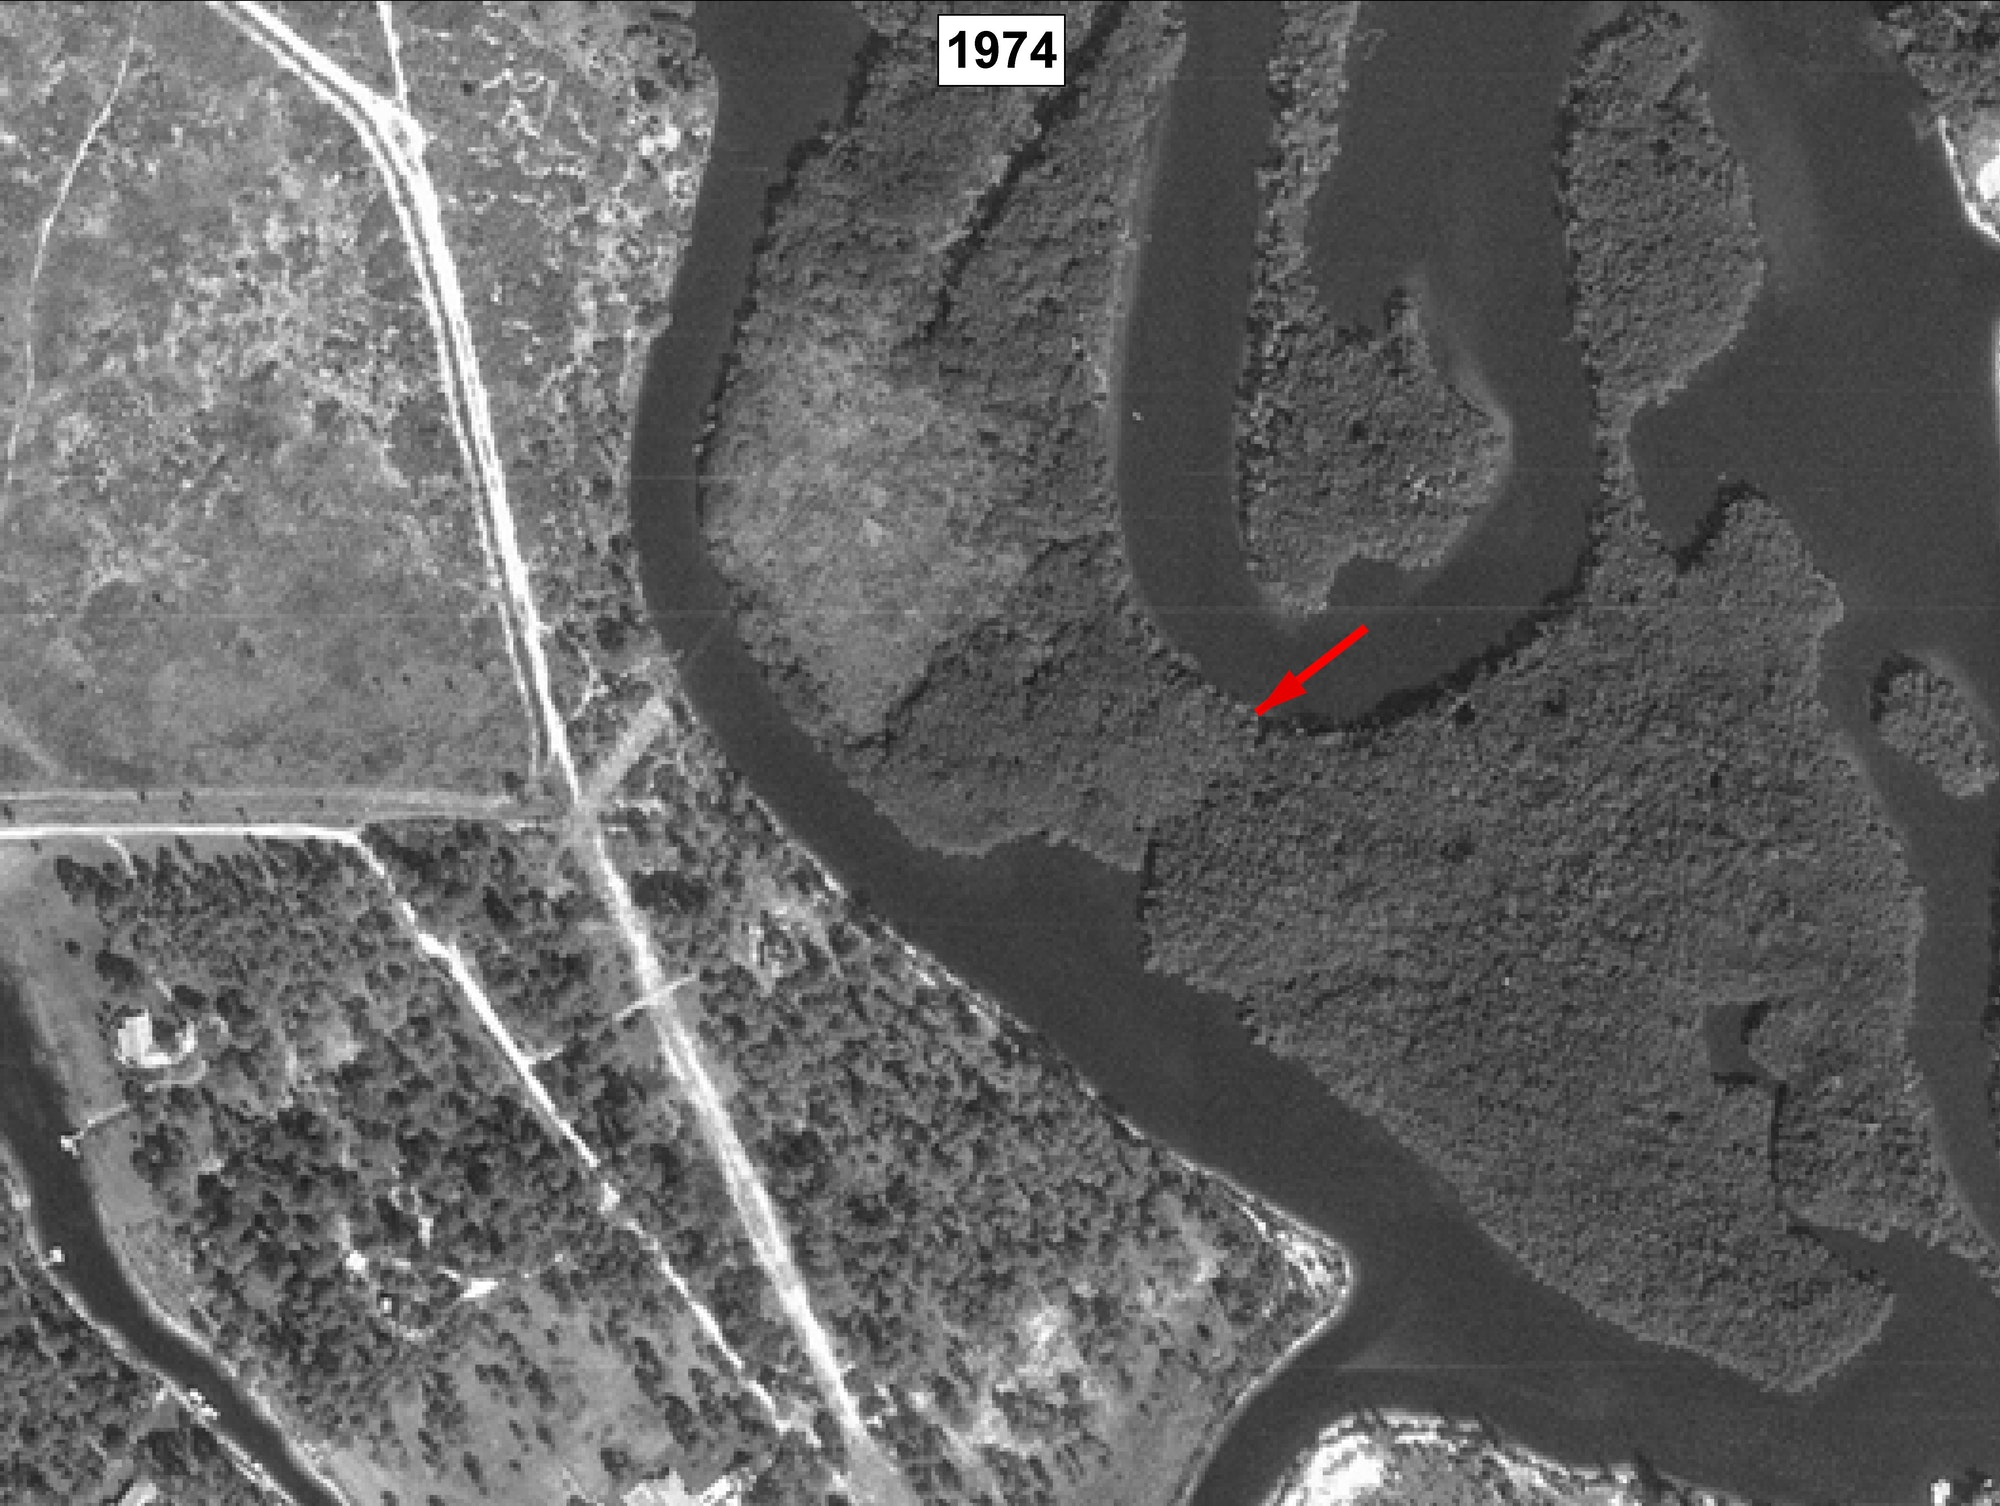 aerial view of meandering river with undeveloped land, red arrow and labeled 1974